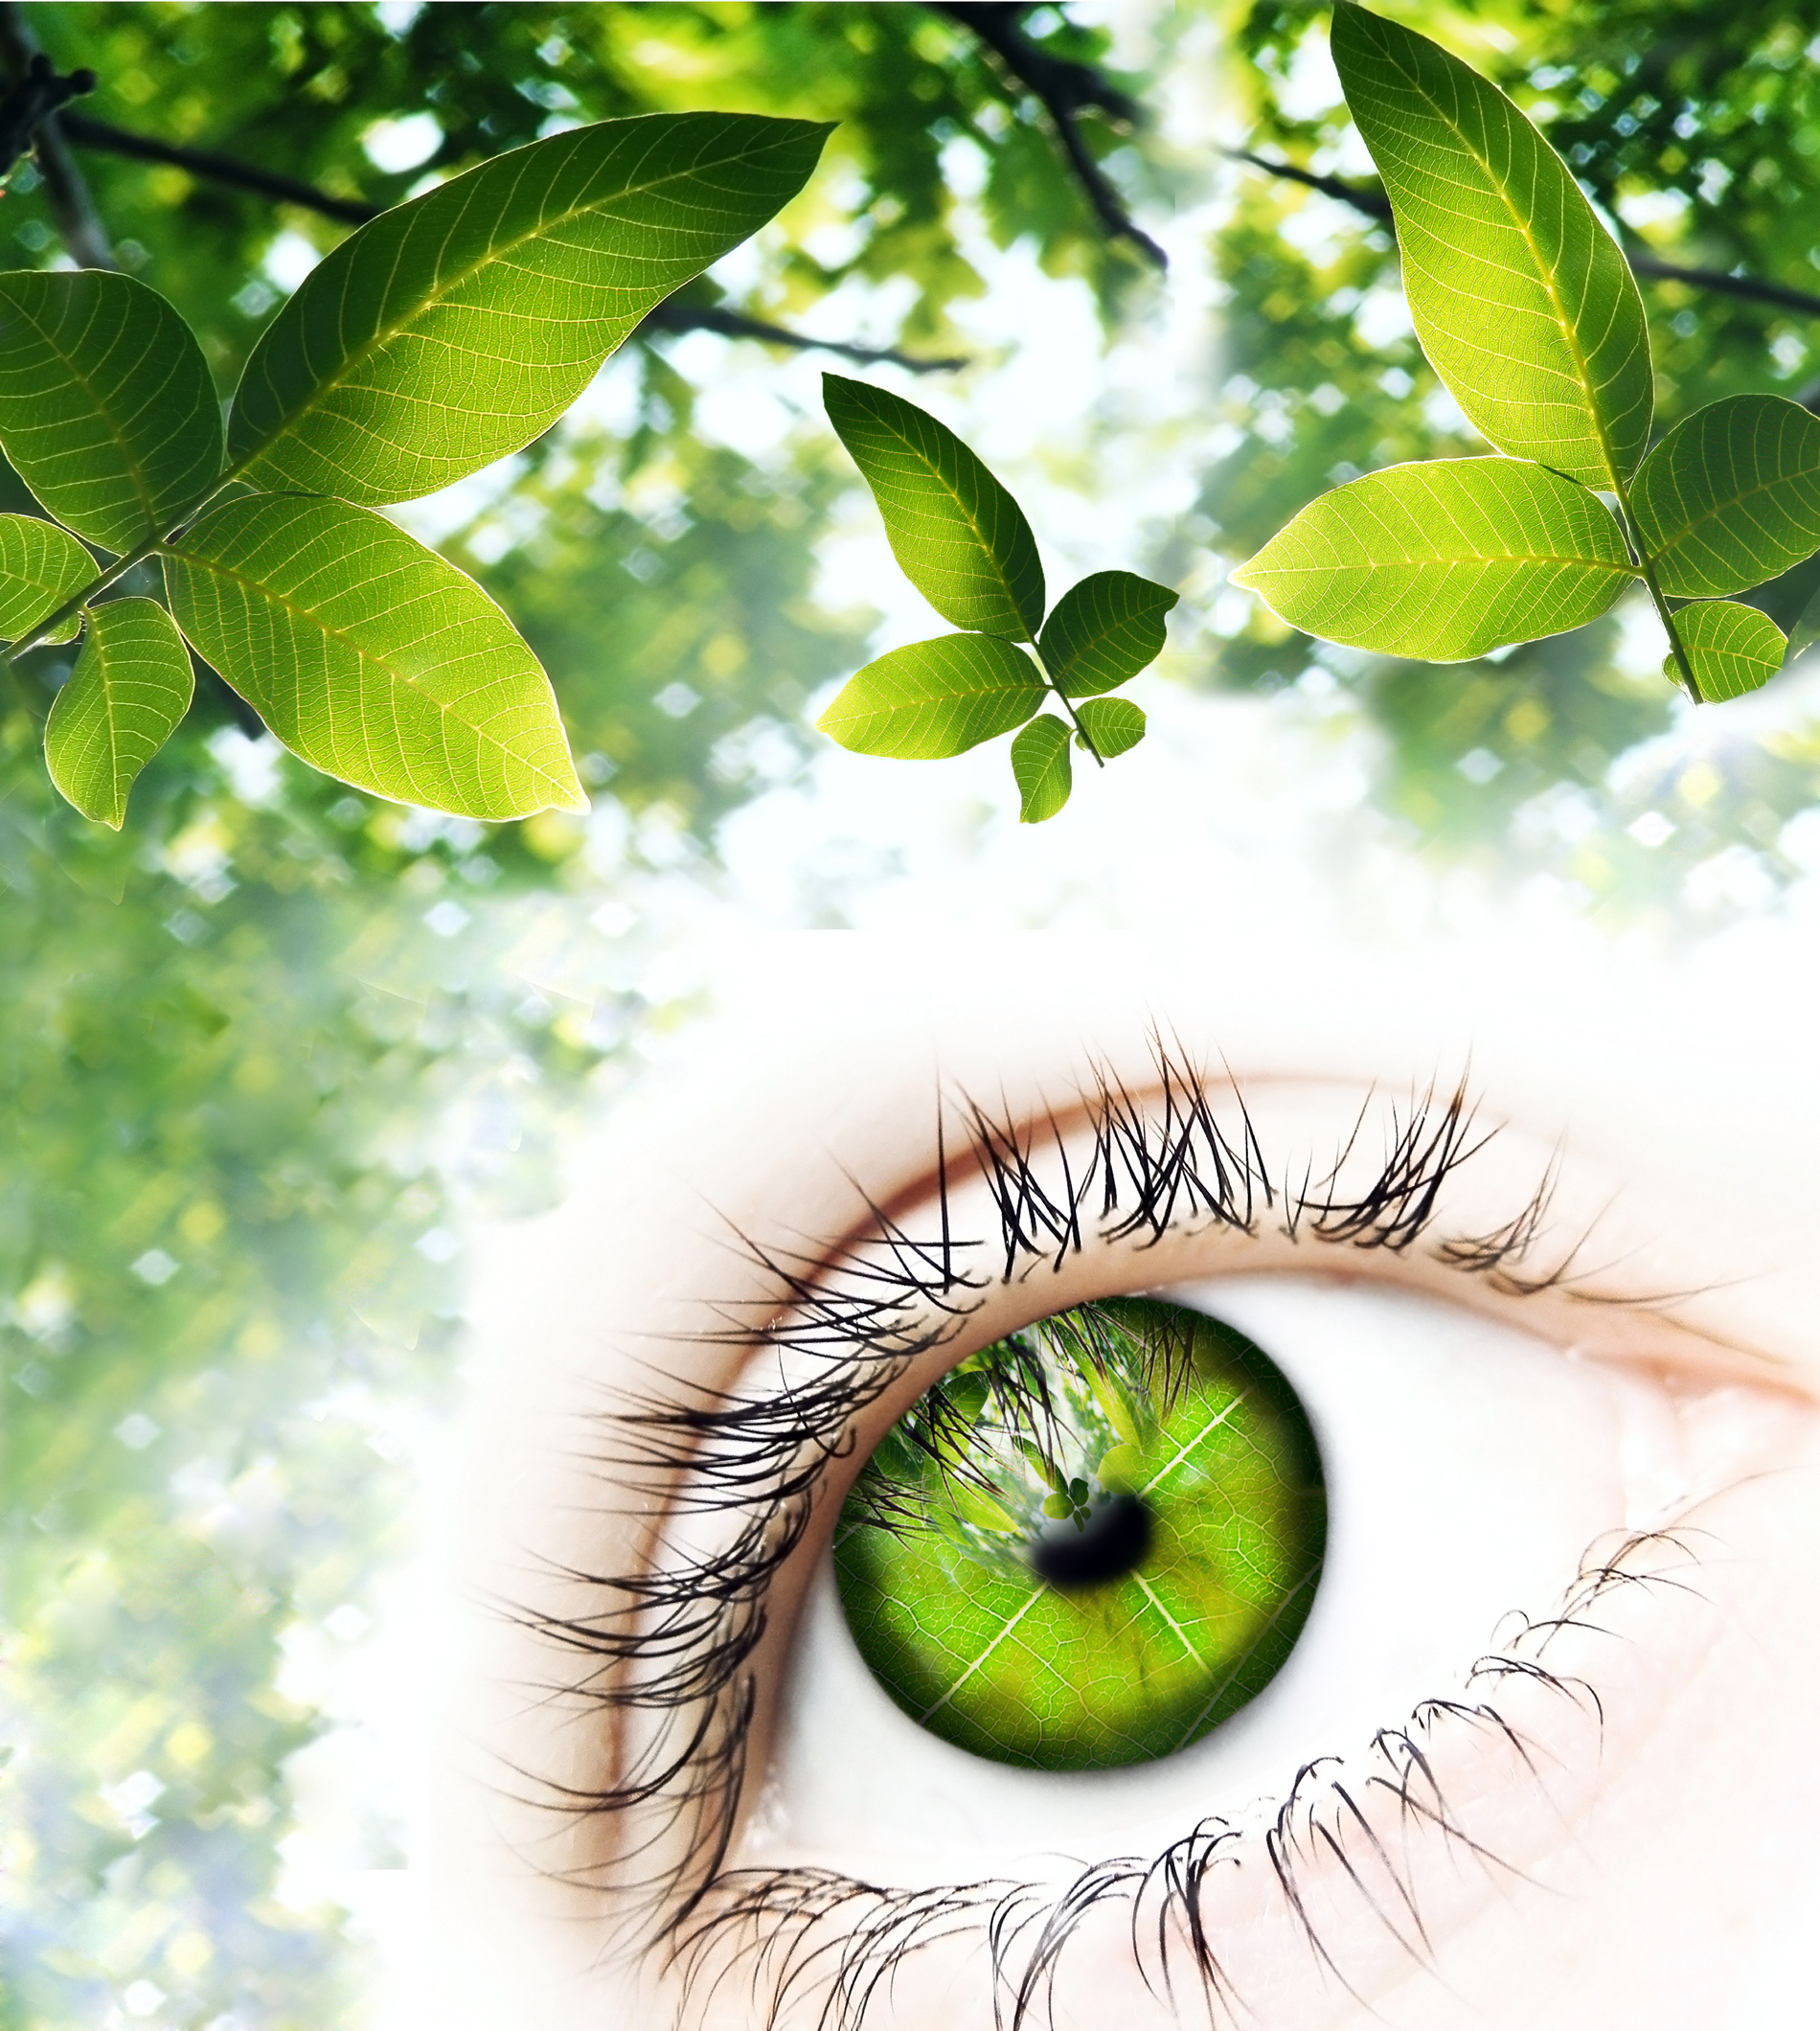 Eyes with green leaves on the tree creative 52709